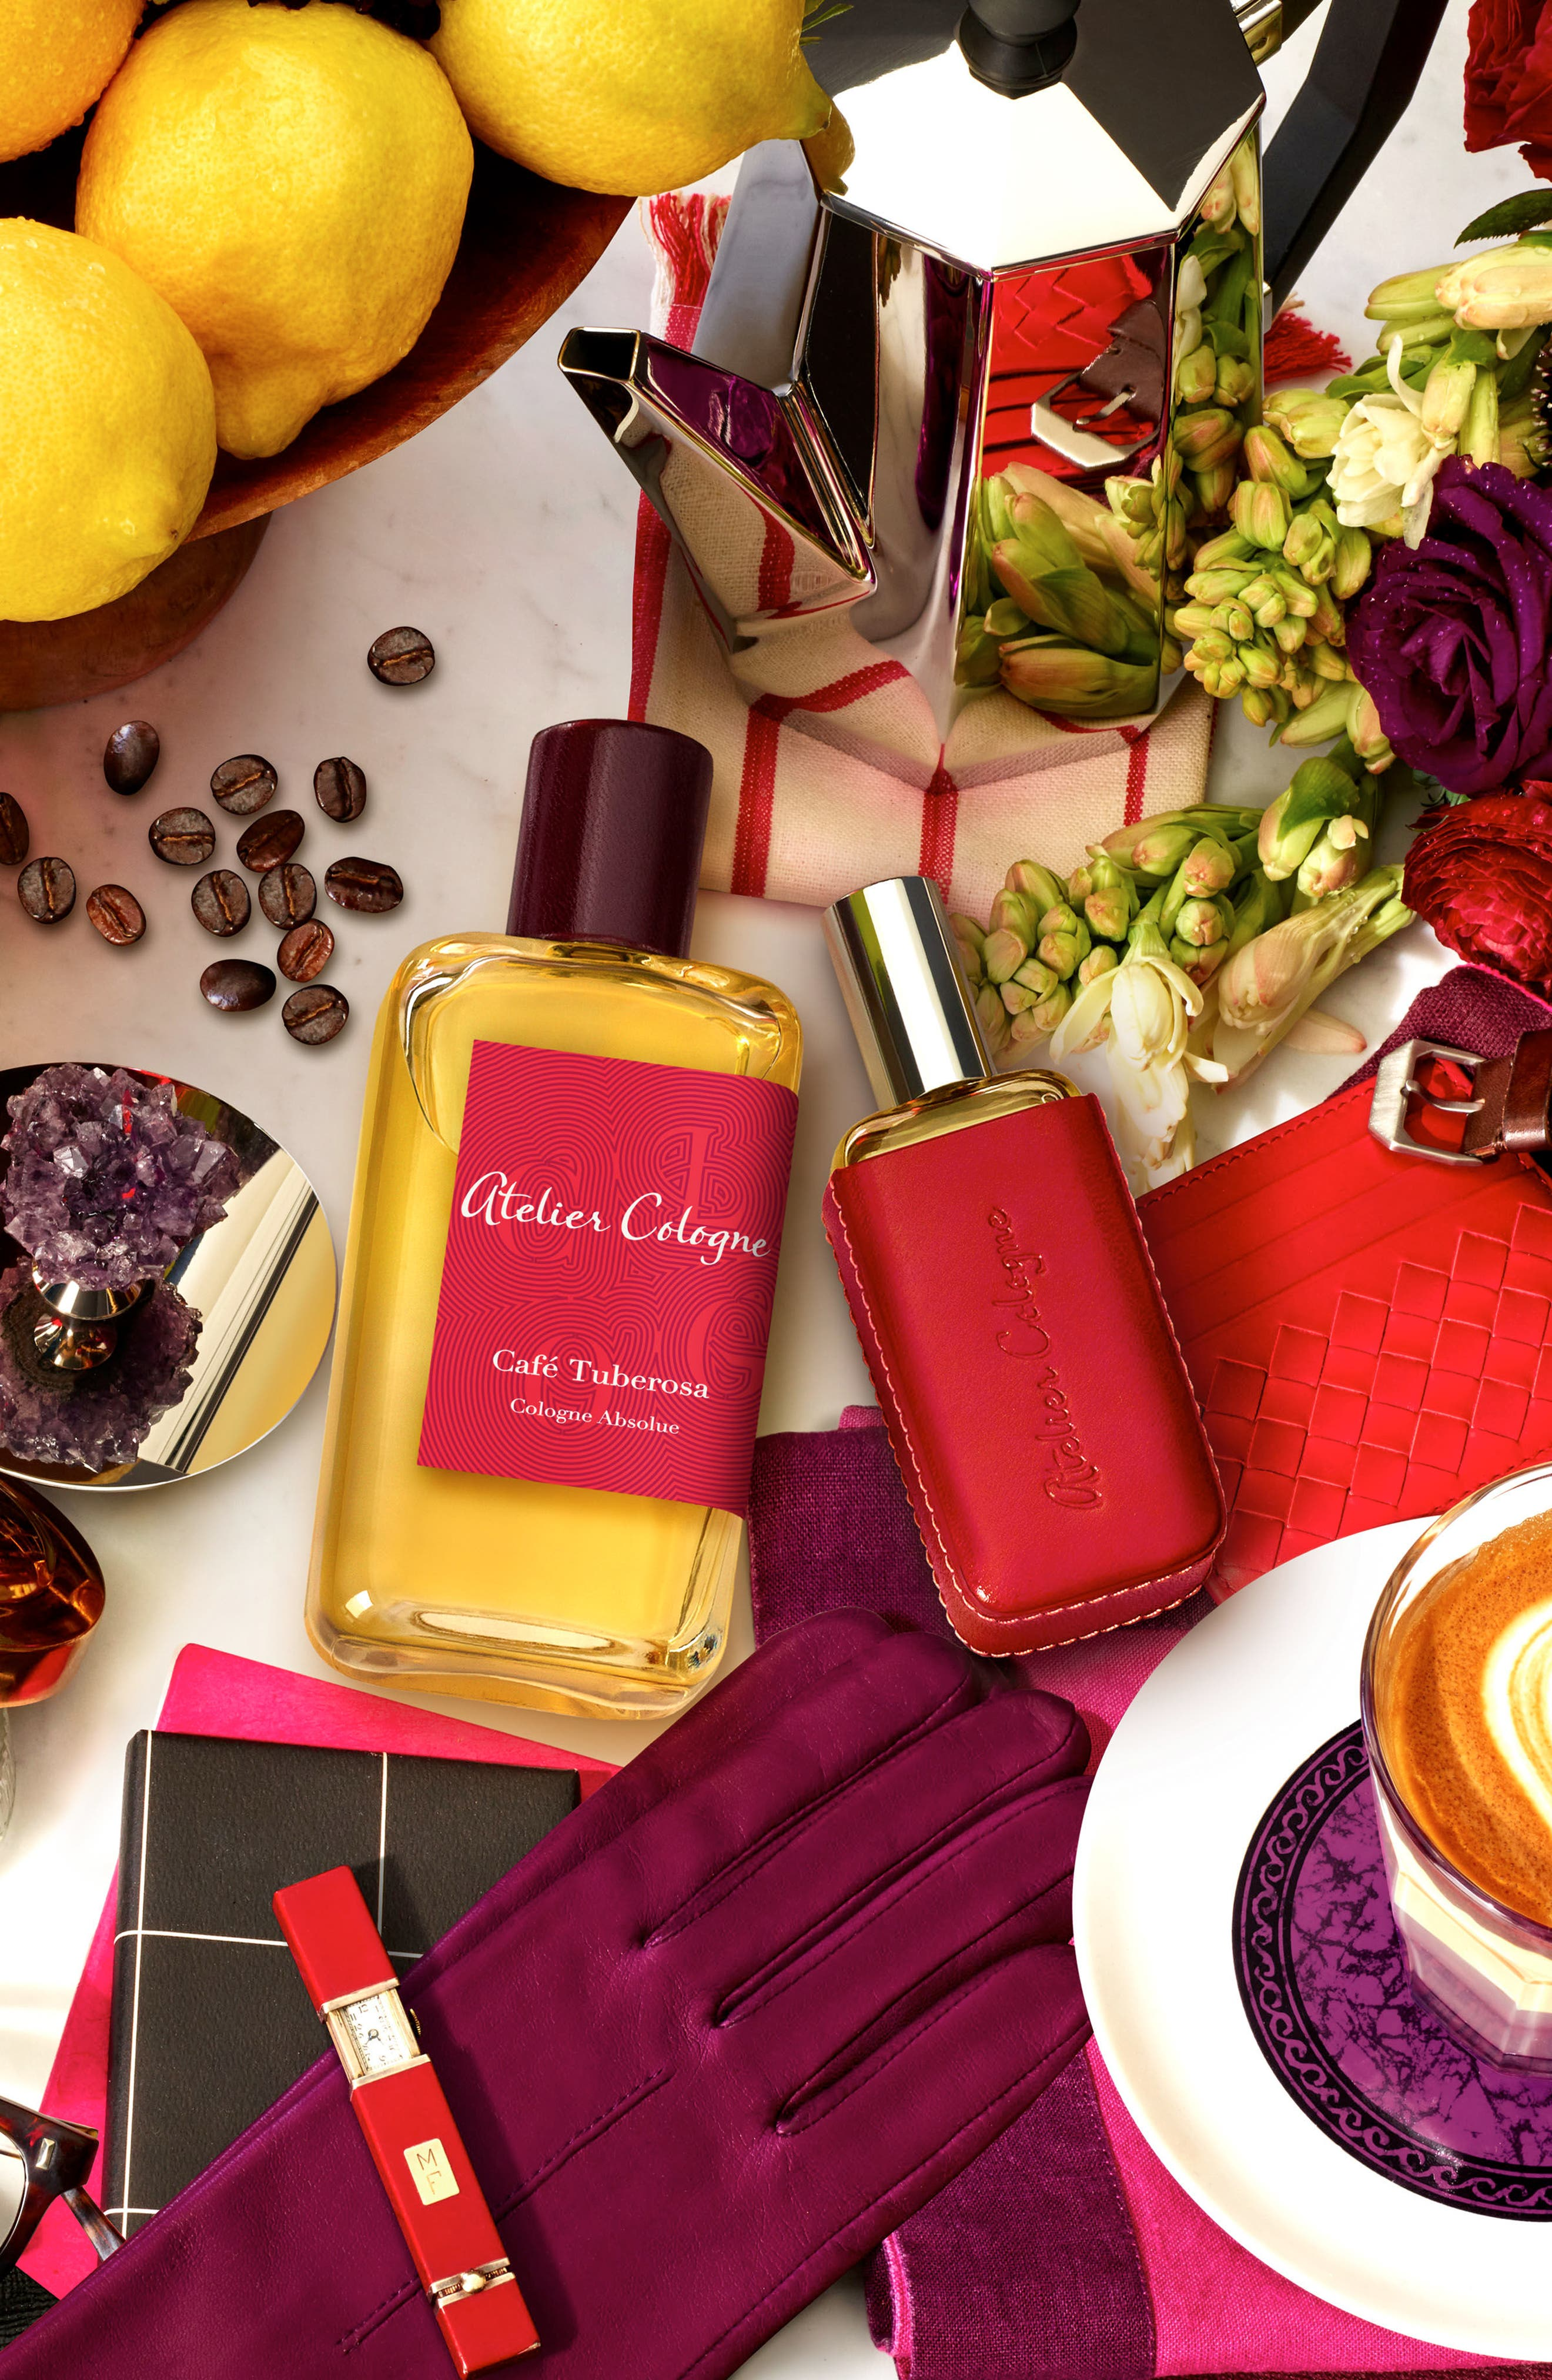 ATELIER COLOGNE,                             Café Tuberosa Cologne Absolue,                             Alternate thumbnail 5, color,                             NO COLOR